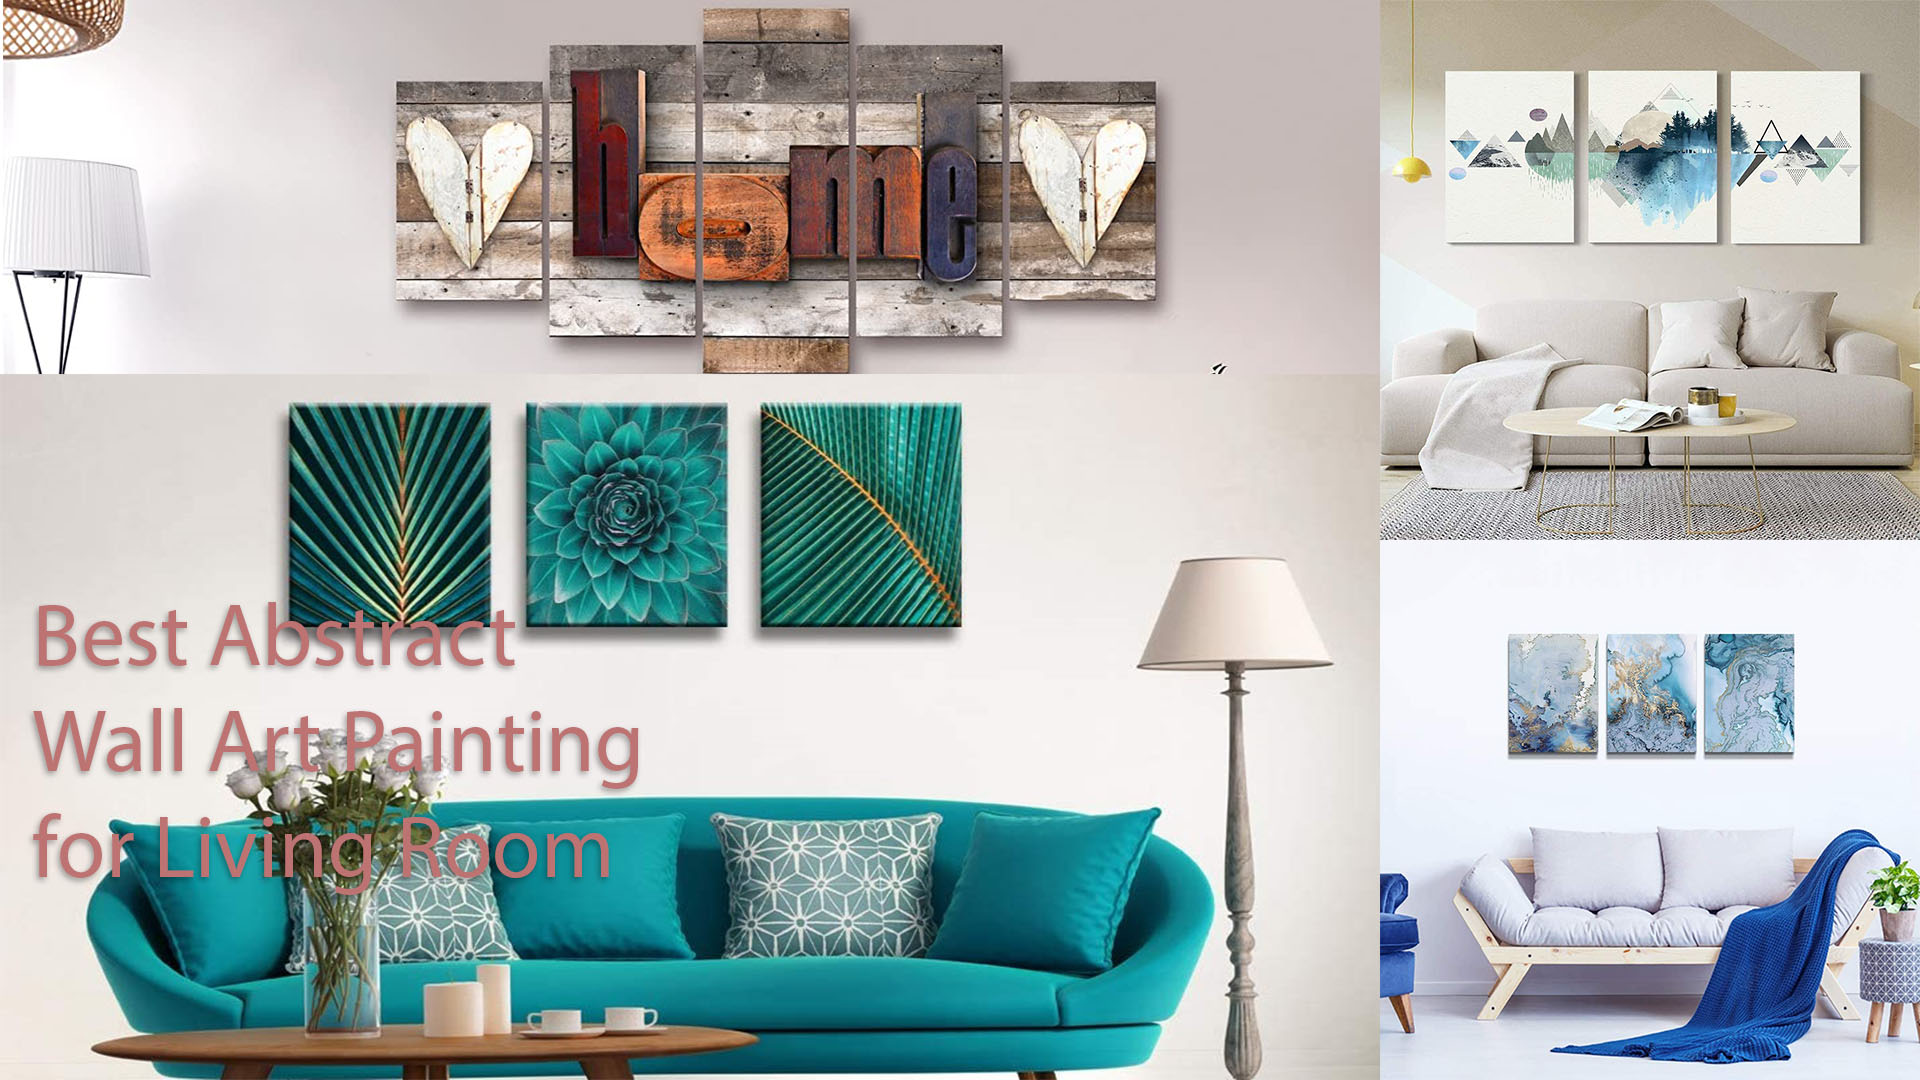 Abstract-Wall-Art-Painting-for-Living-Room